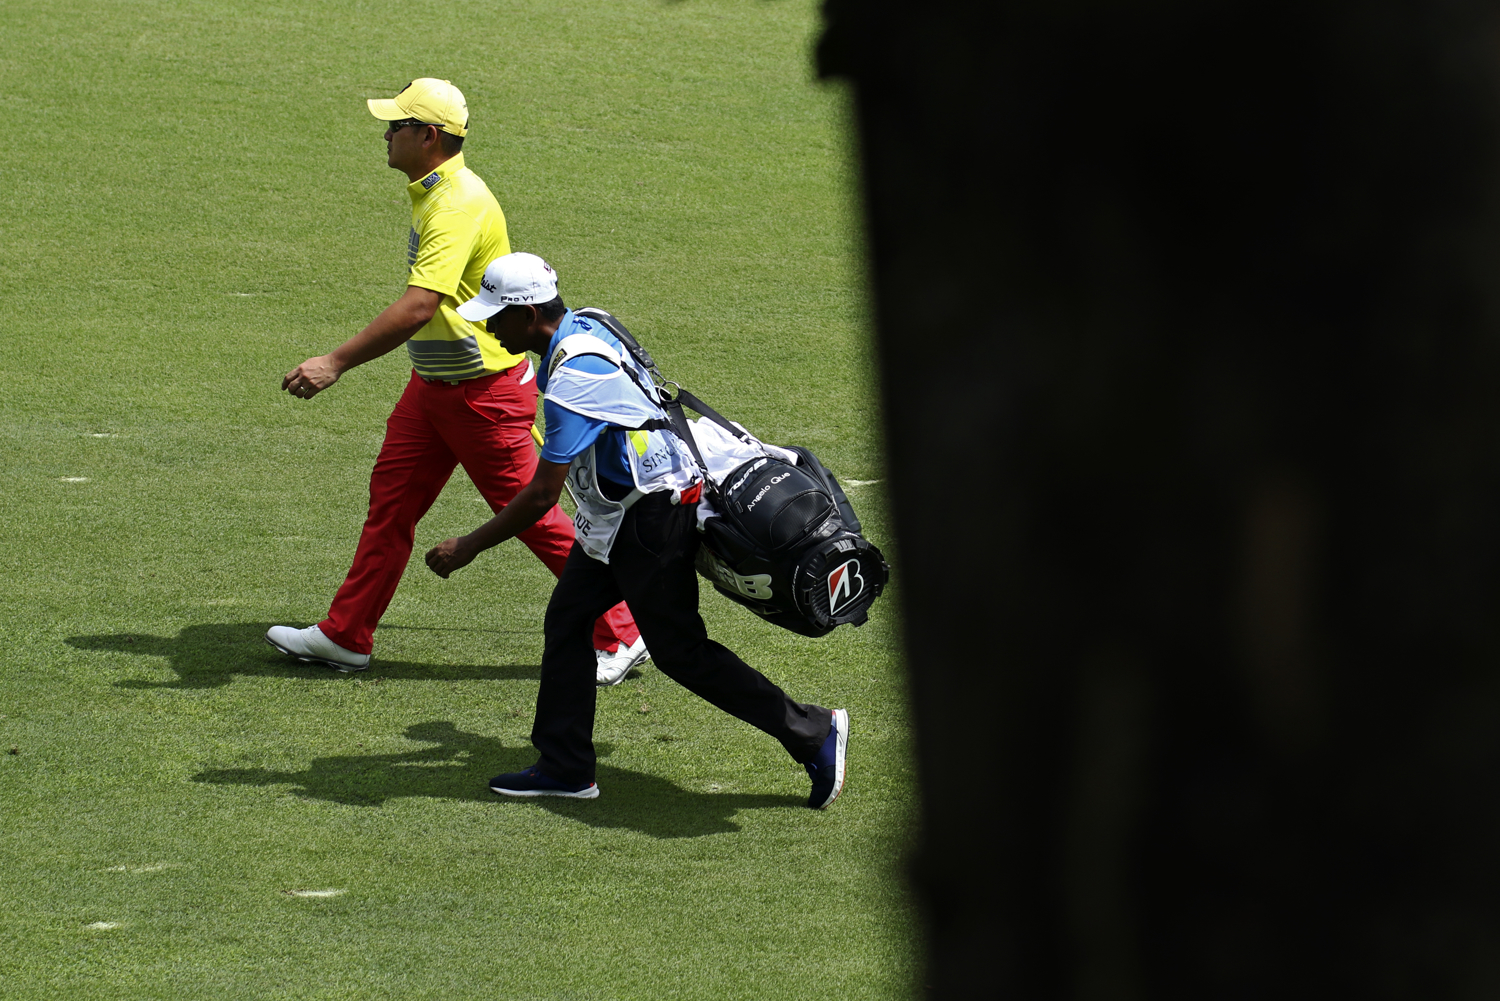 Angelo Que of the Philippines and his caddy walk on the seventh fairway during the final round of the SMBC Singapore Open golf tournament at Sentosa's Serapong golf course in Singapore January 22, 2017.